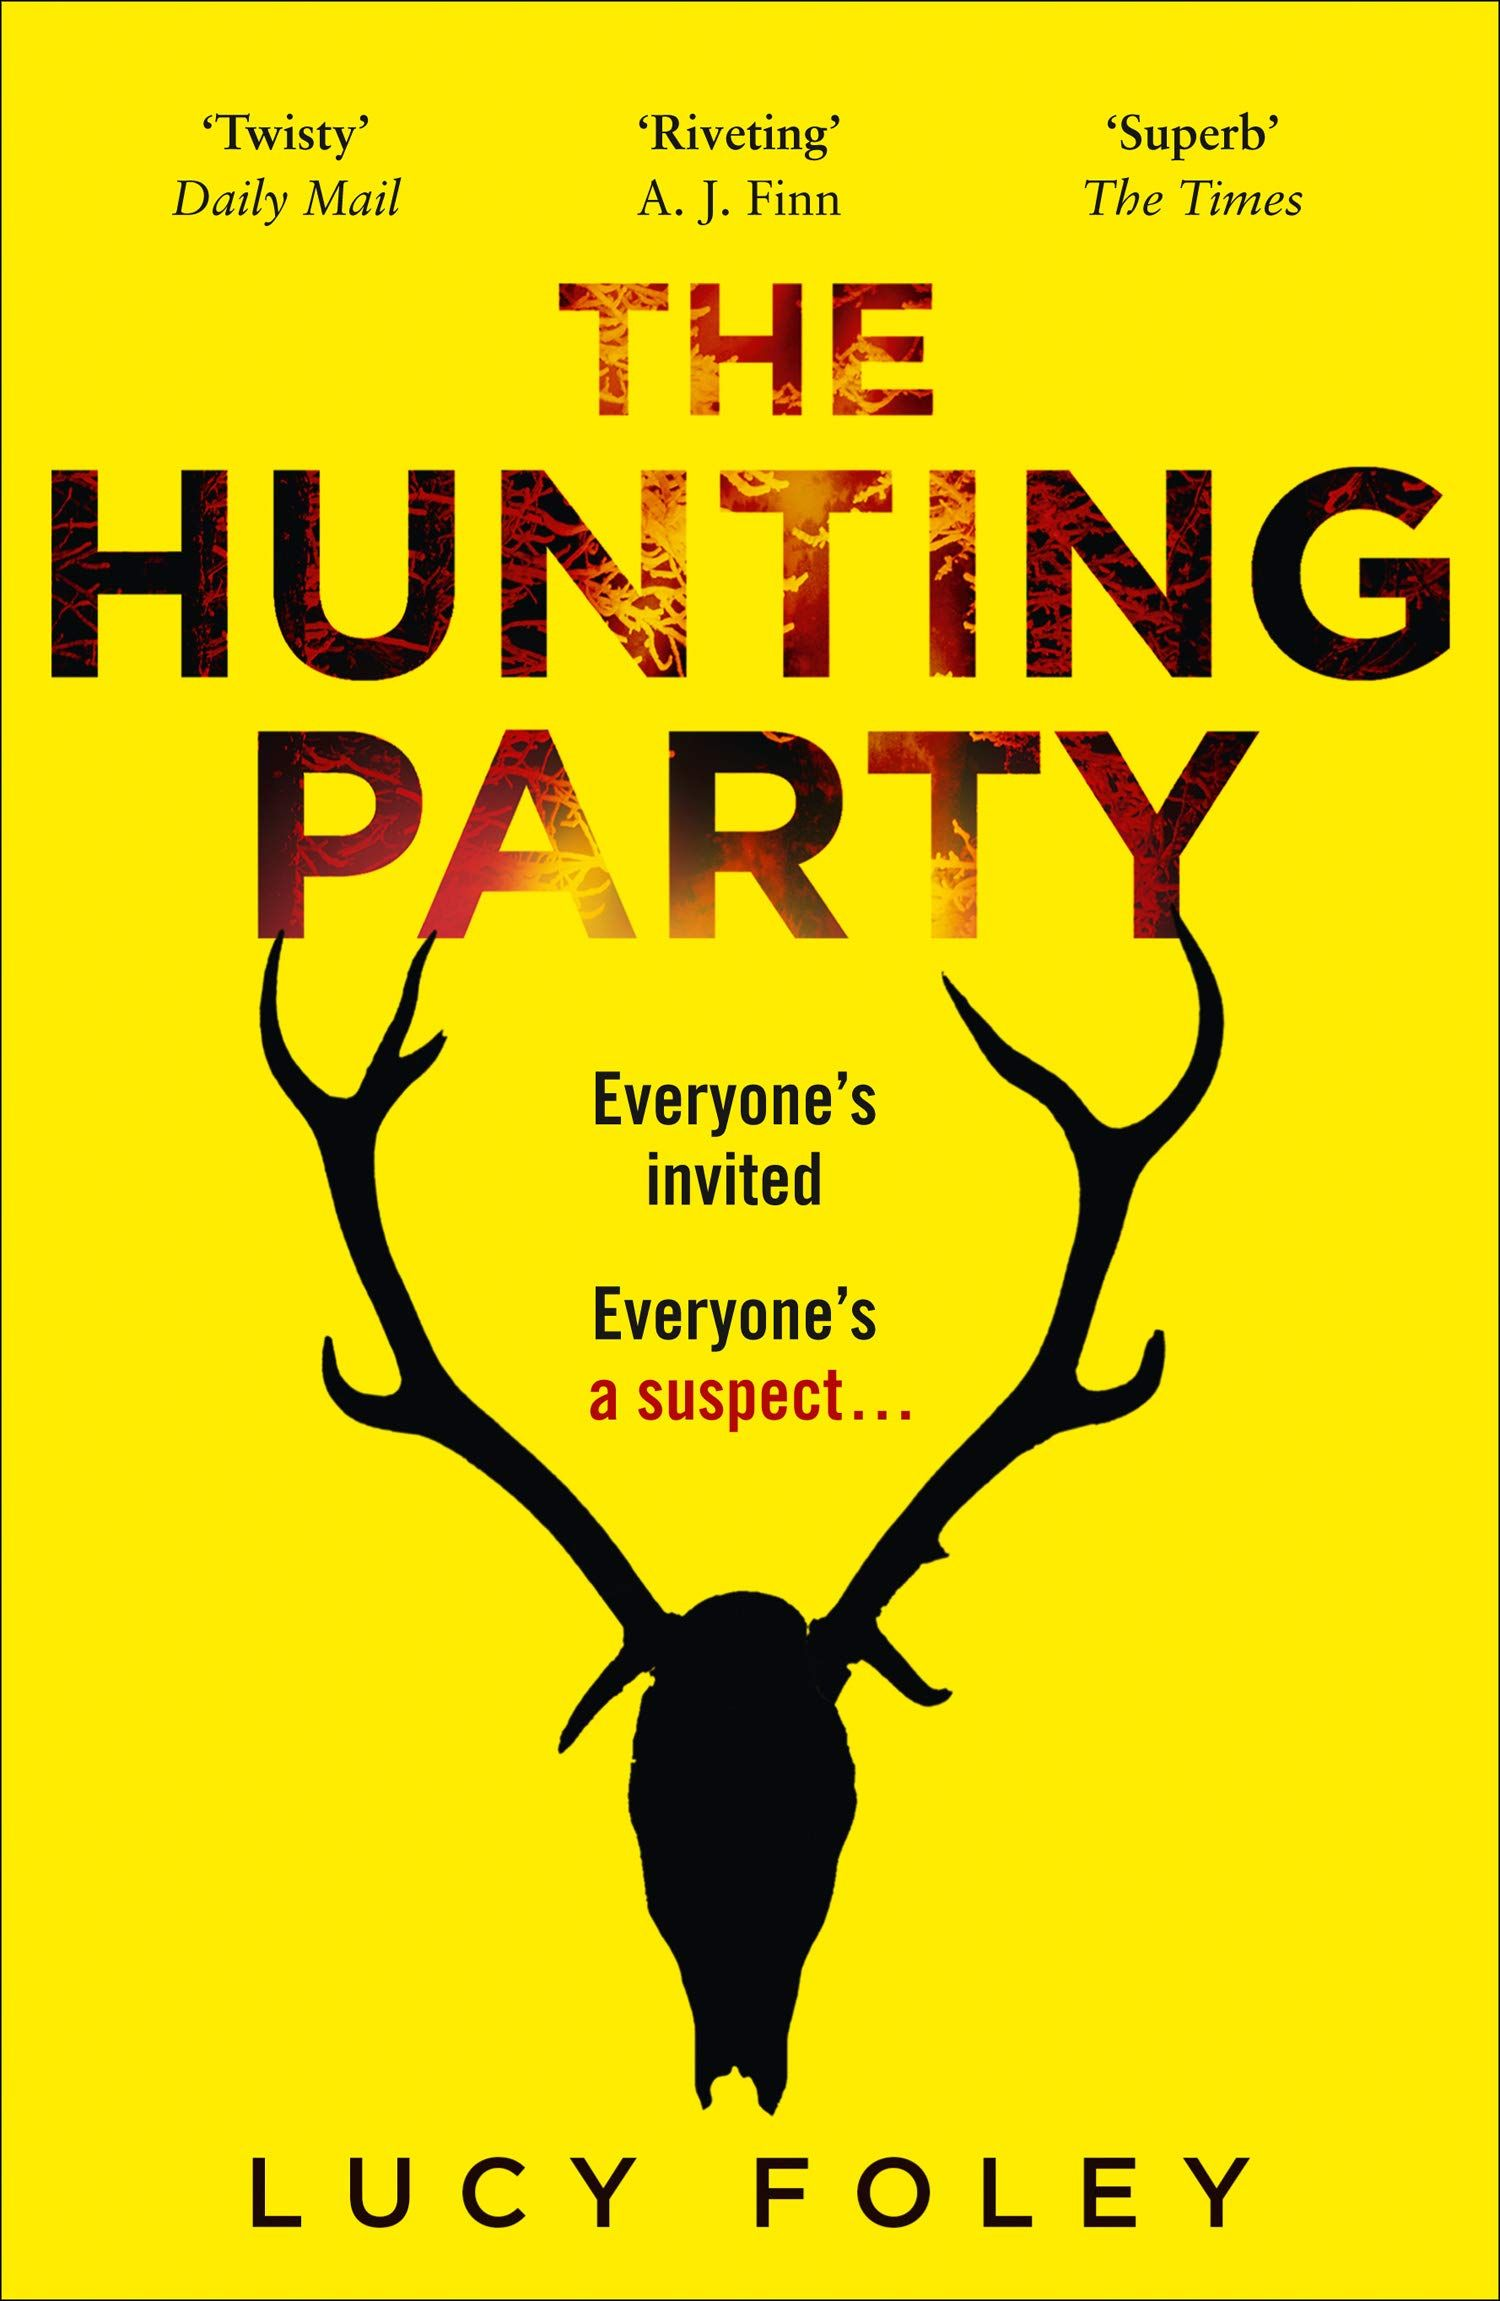 HUNTING PARTY THE